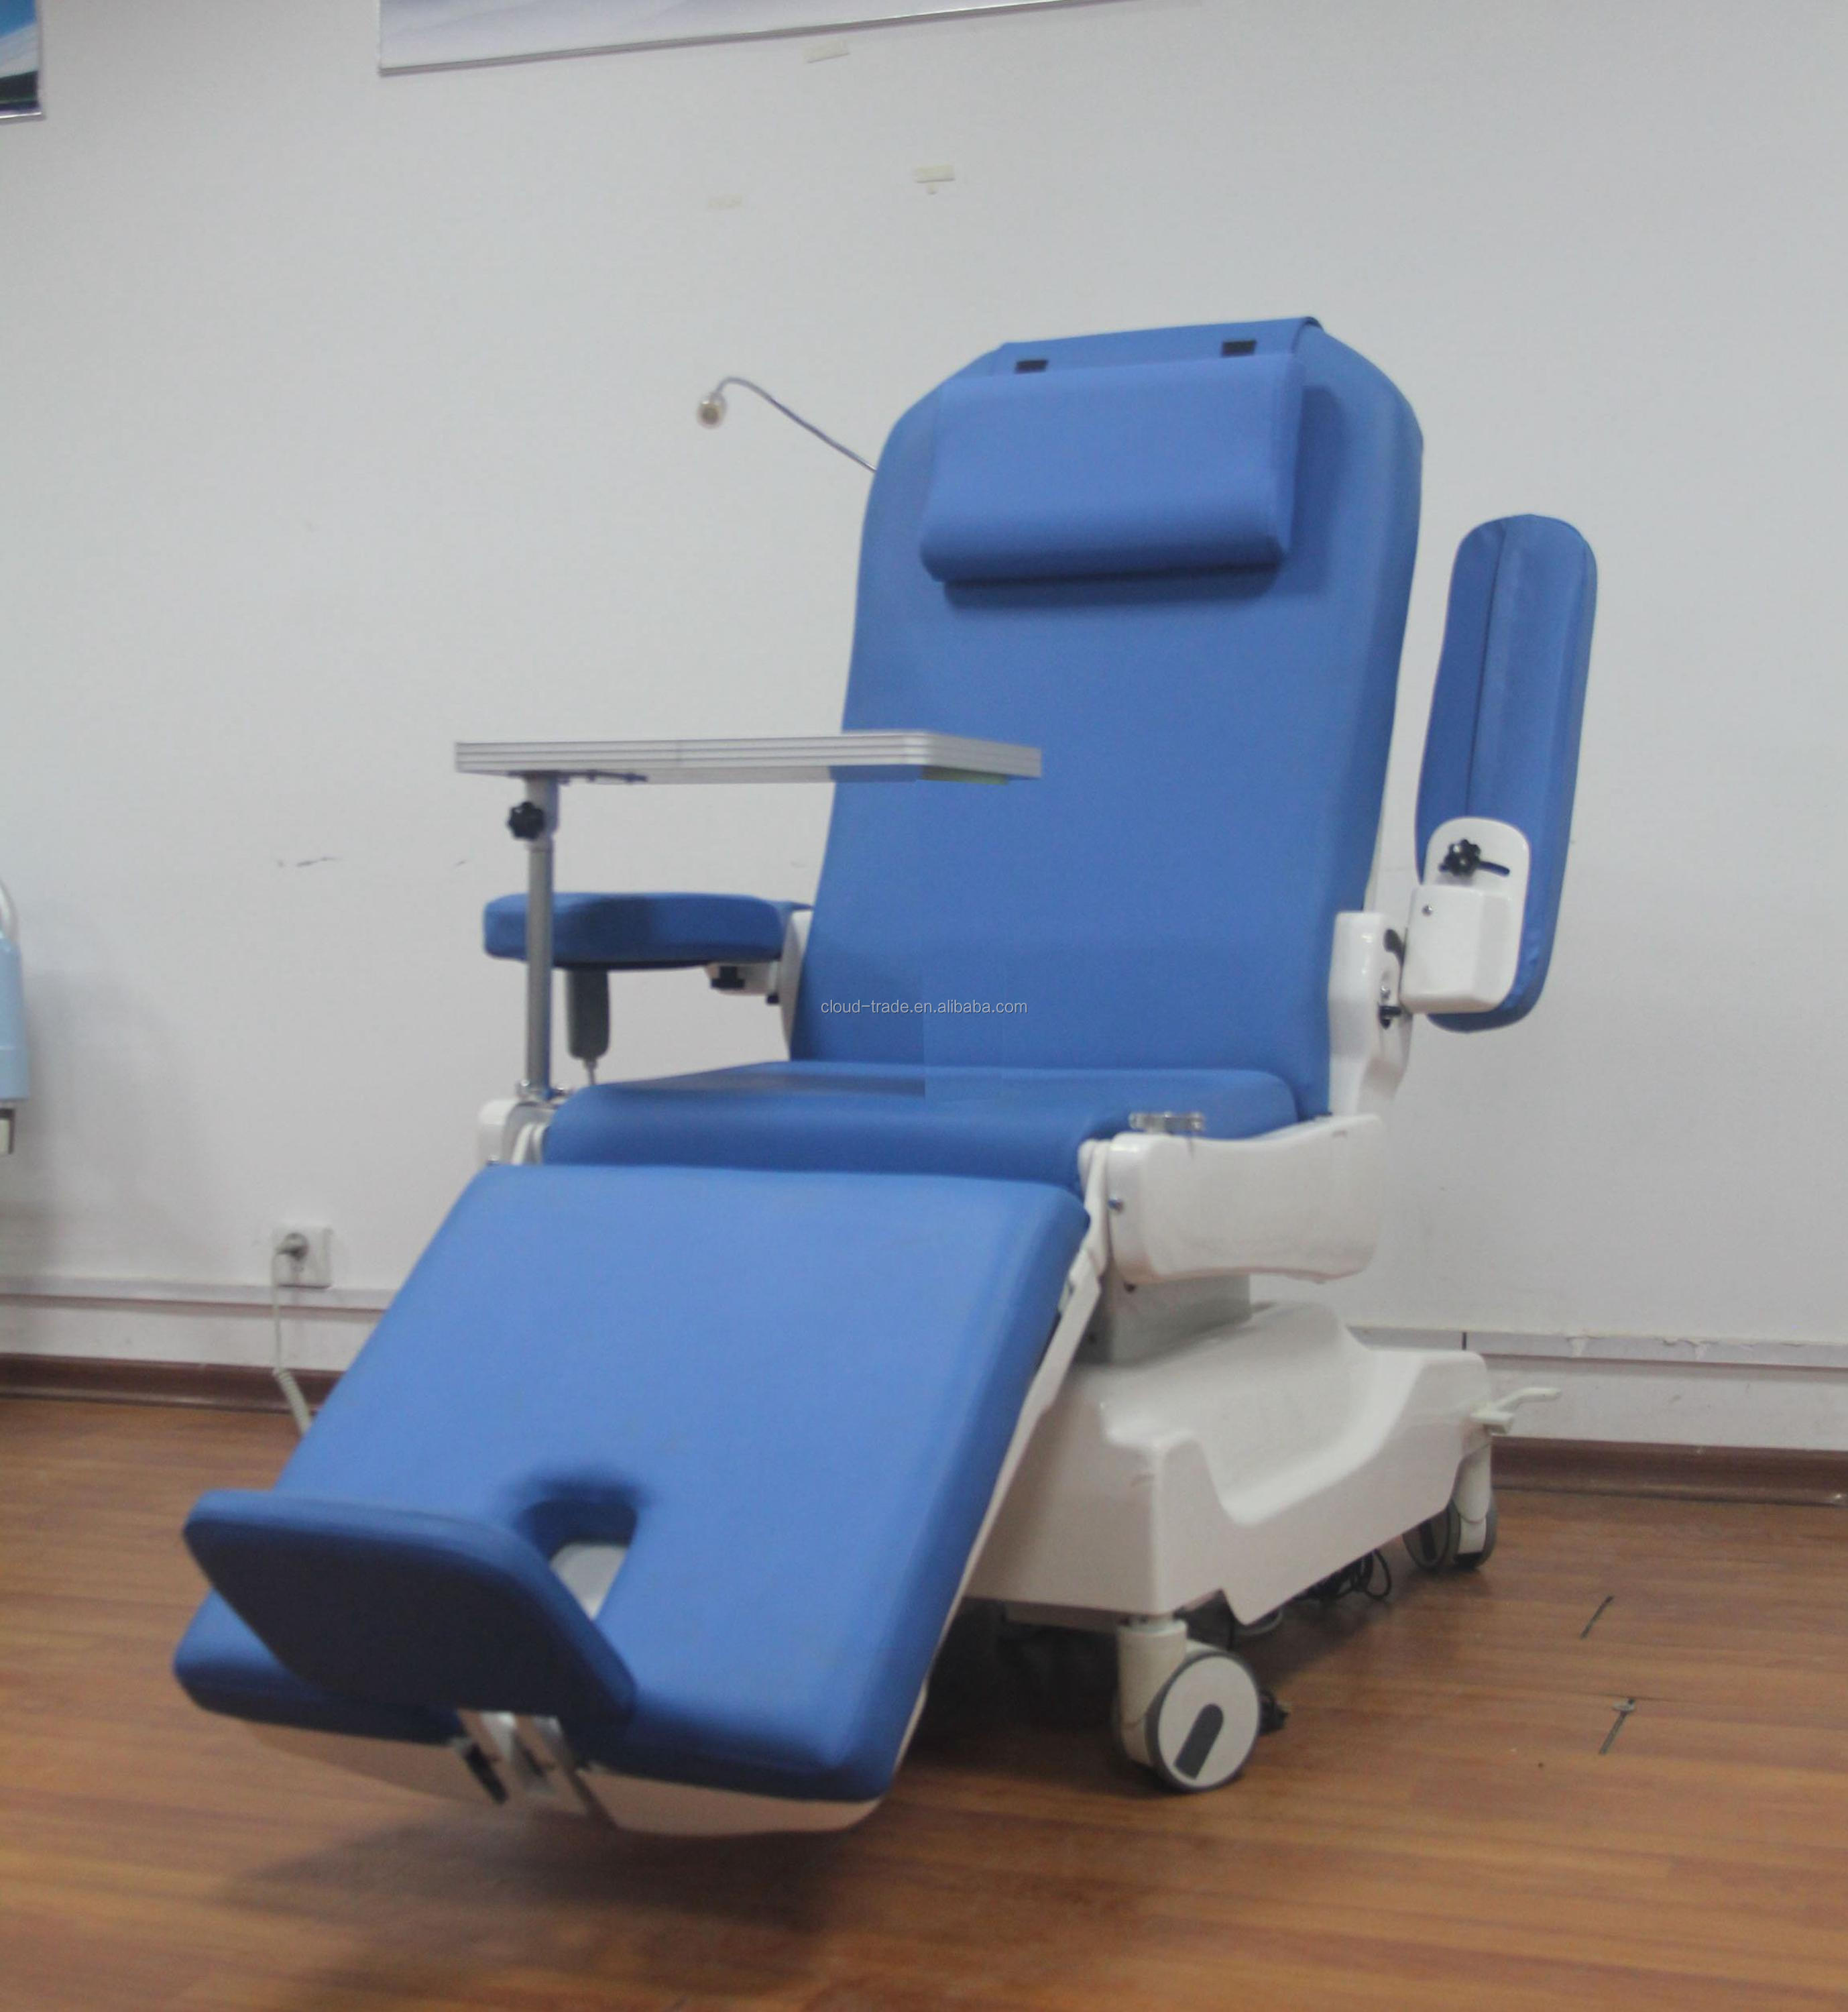 recliner new hospital recliners chair chairs boy whitehouse furniture lazy lift zealand electric